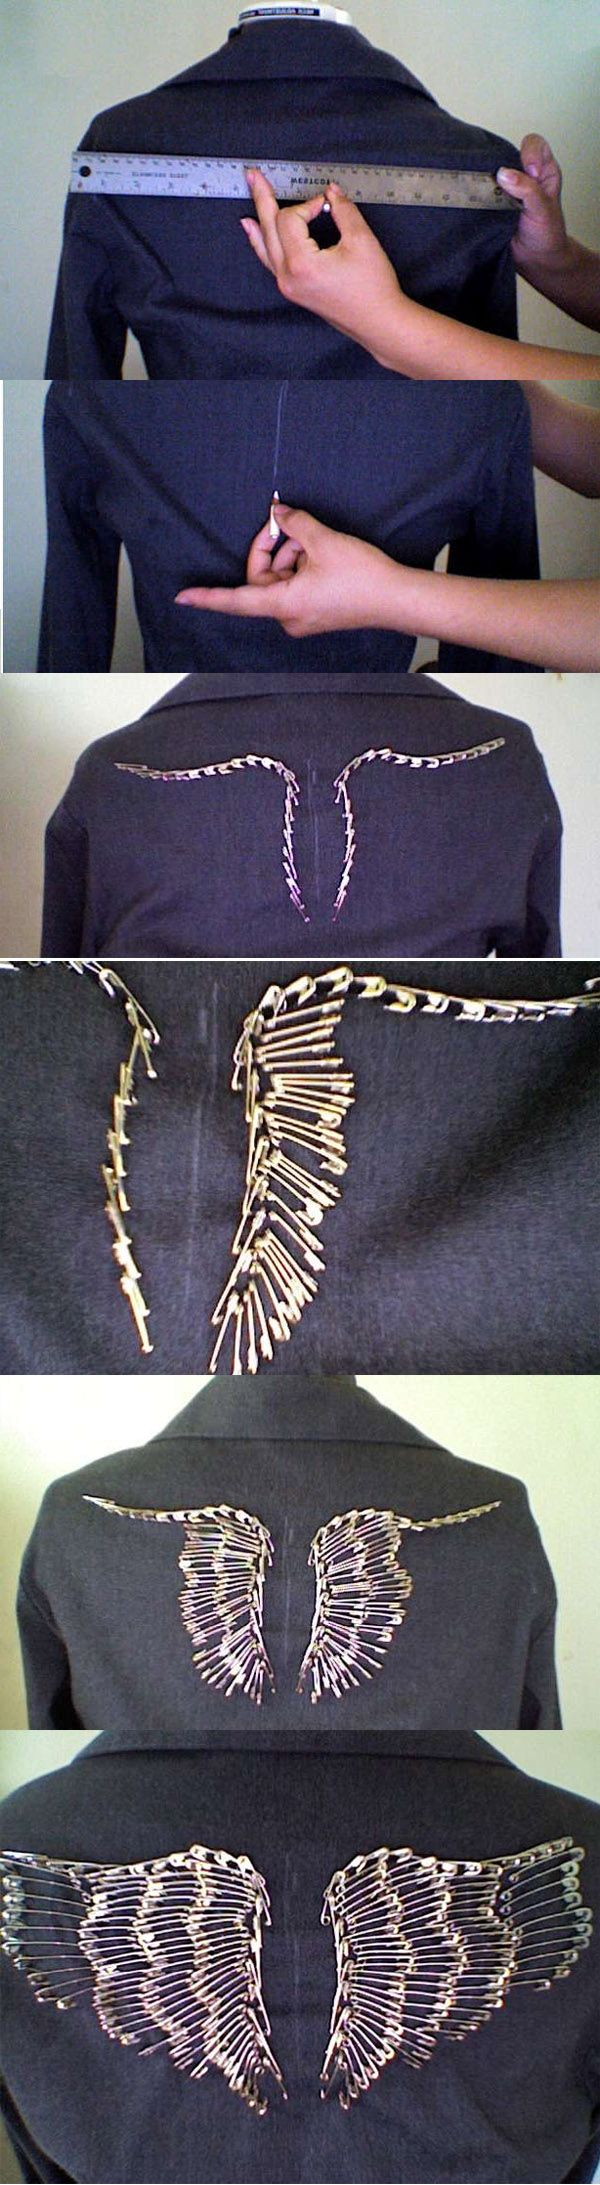 DIY ::  Safety Pin Wings on Jacket ( http://www.instructables.com/id/Safety-Pin-Wings/?ALLSTEPS#step0 )